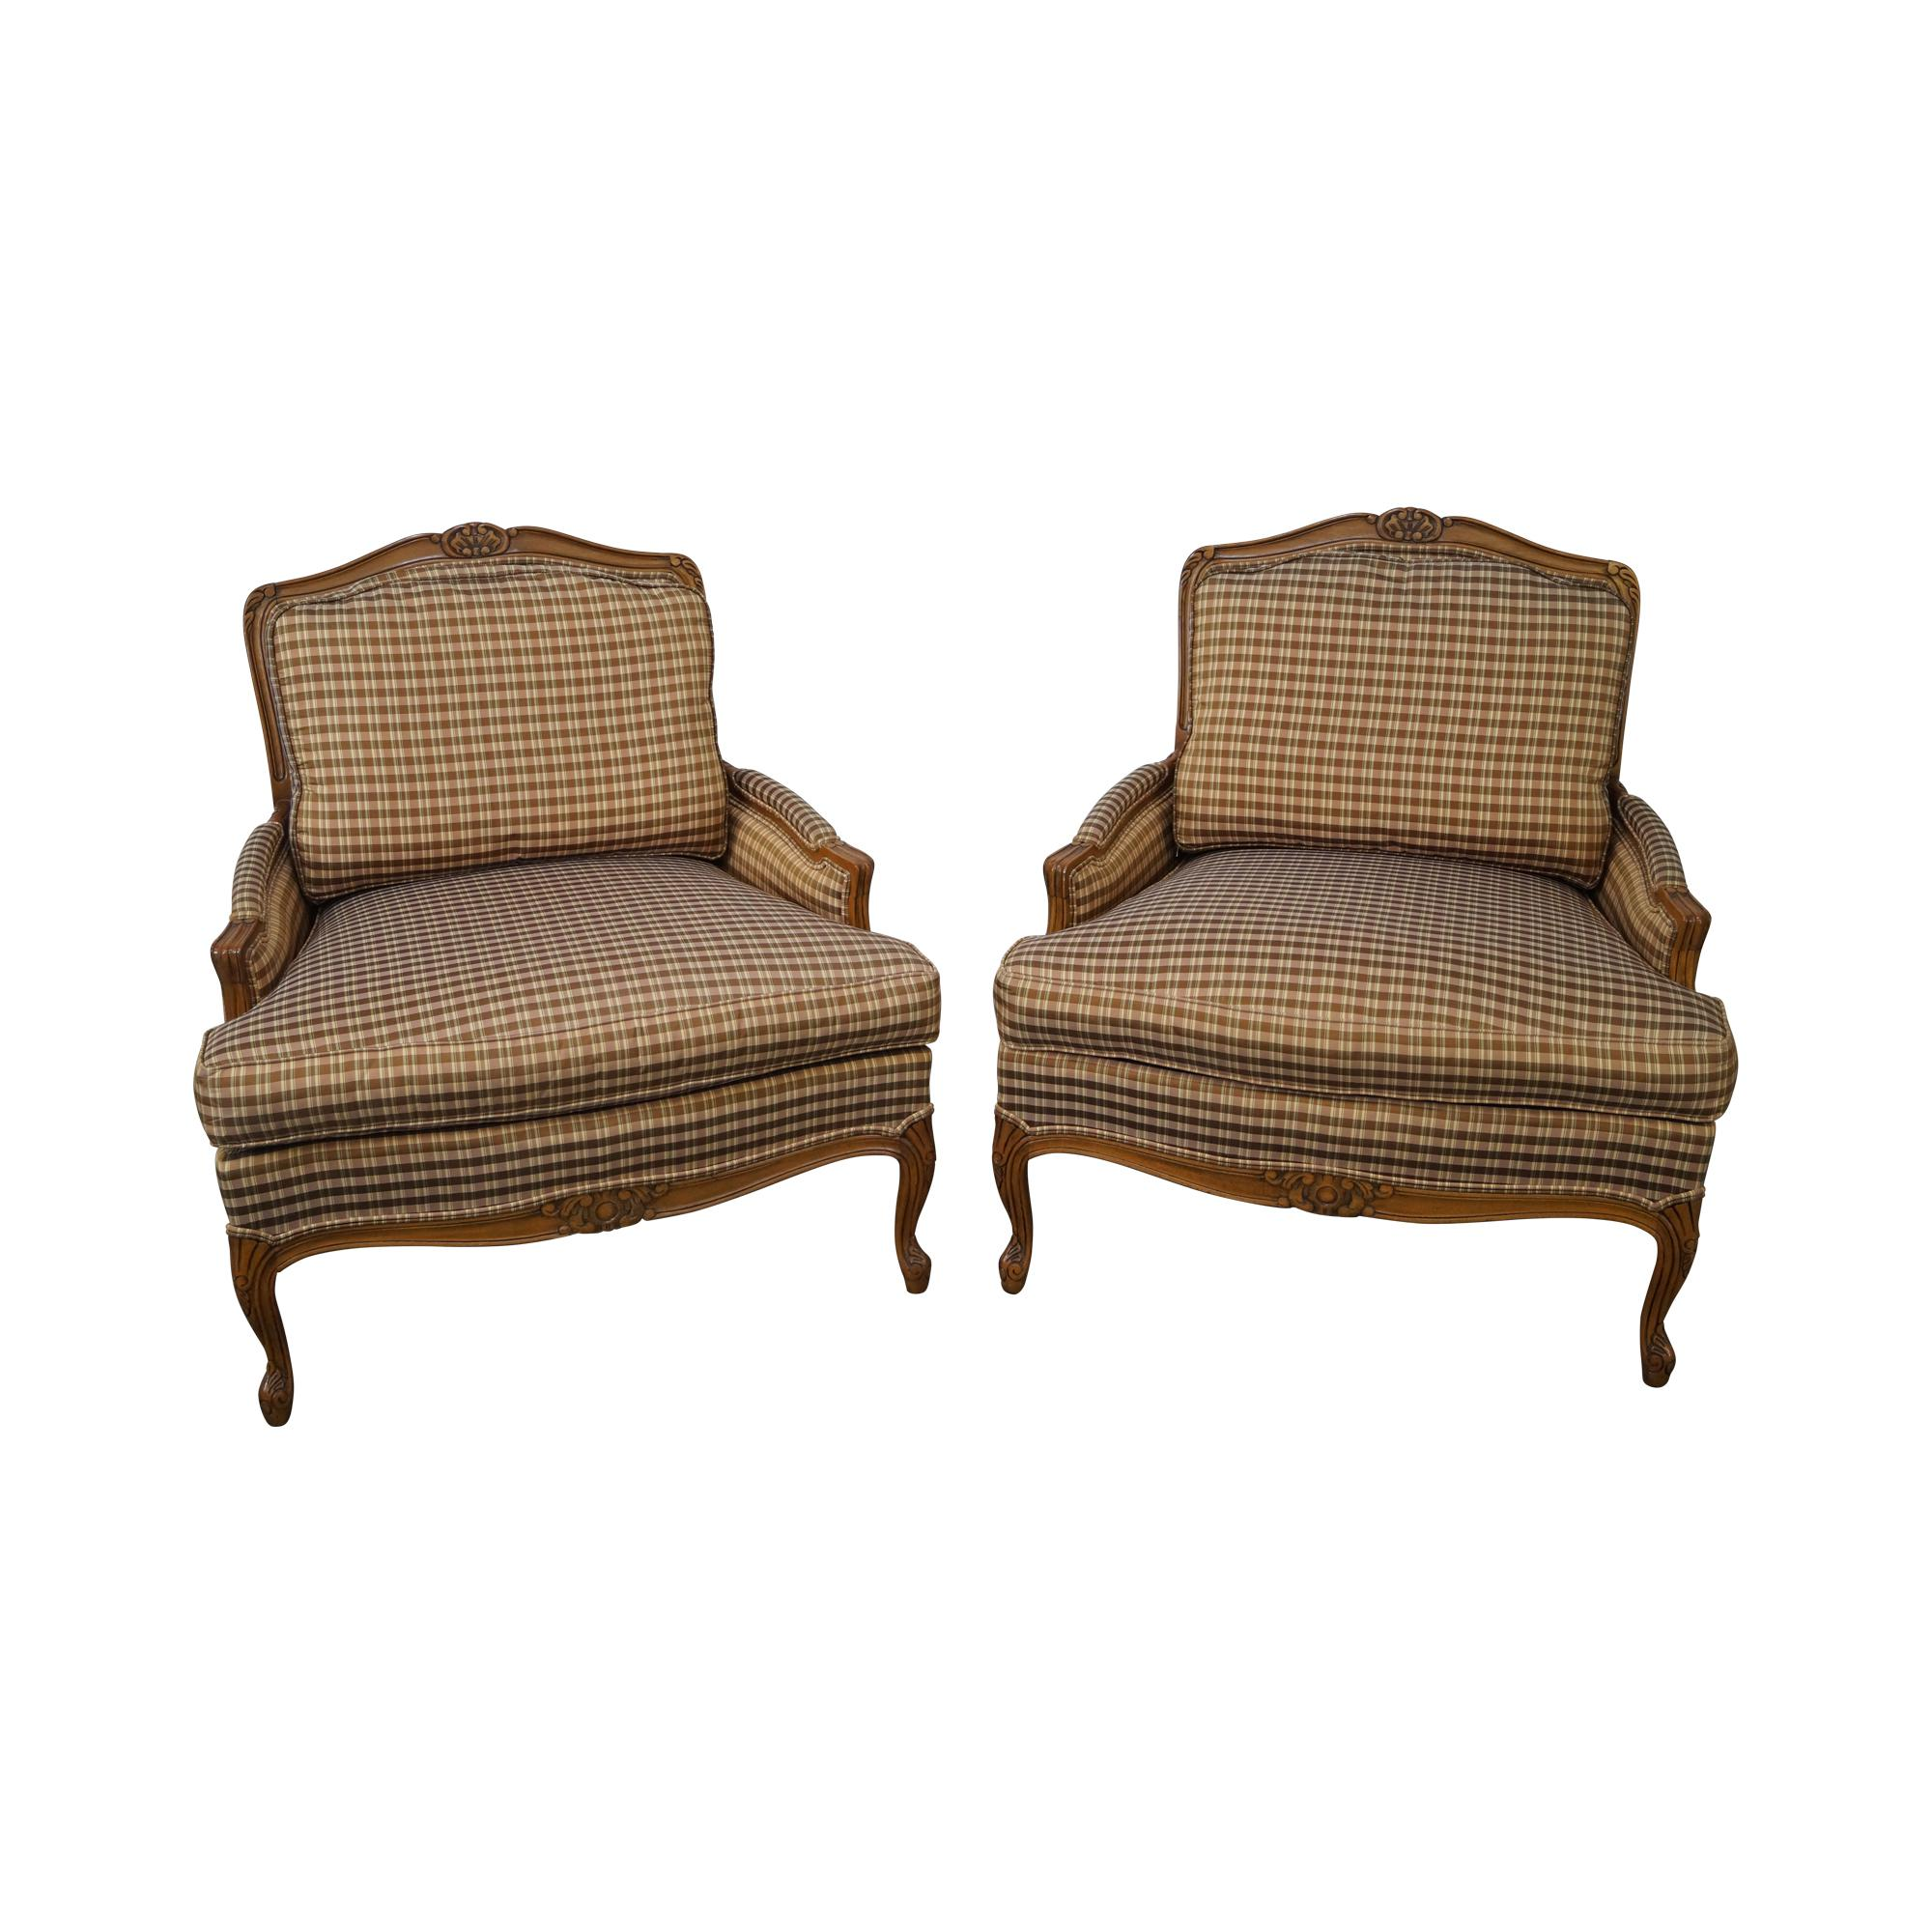 Charmant Taylor King French Louis XV Bergere Chairs   A Pair